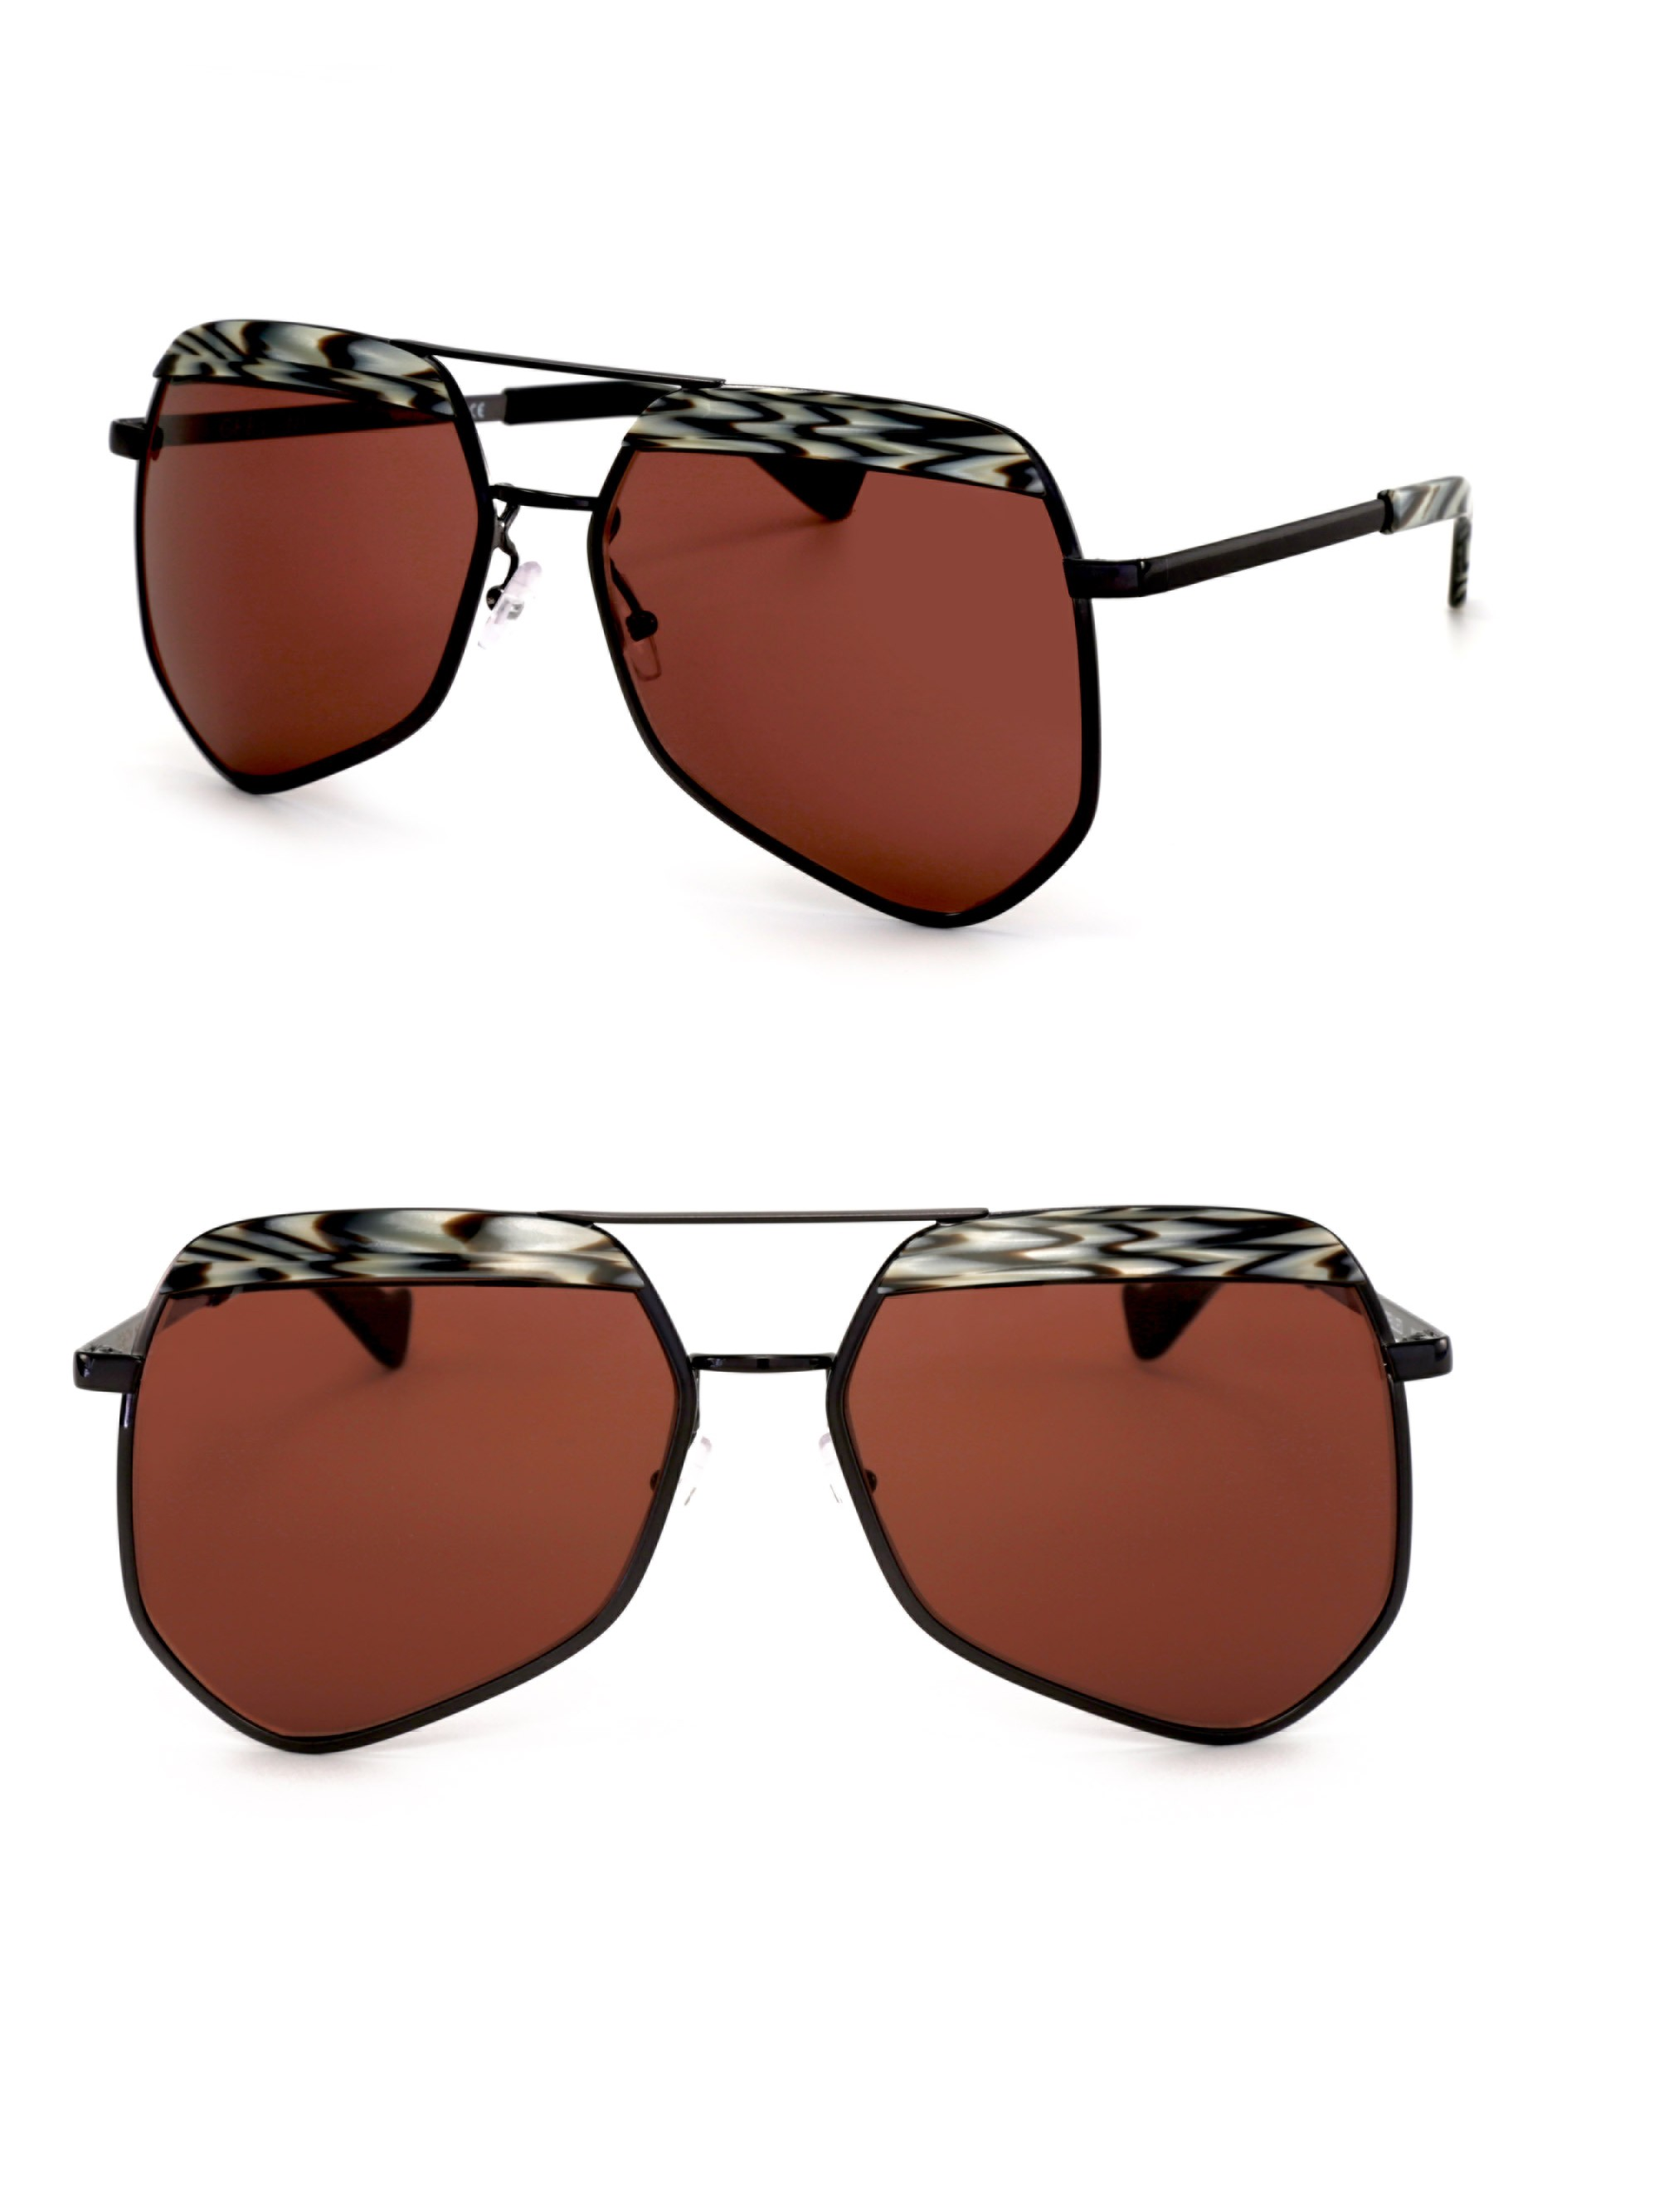 Grey Ant Hexcelled 55Mm The Wire Hexagon Aviator Sunglasses In Rust